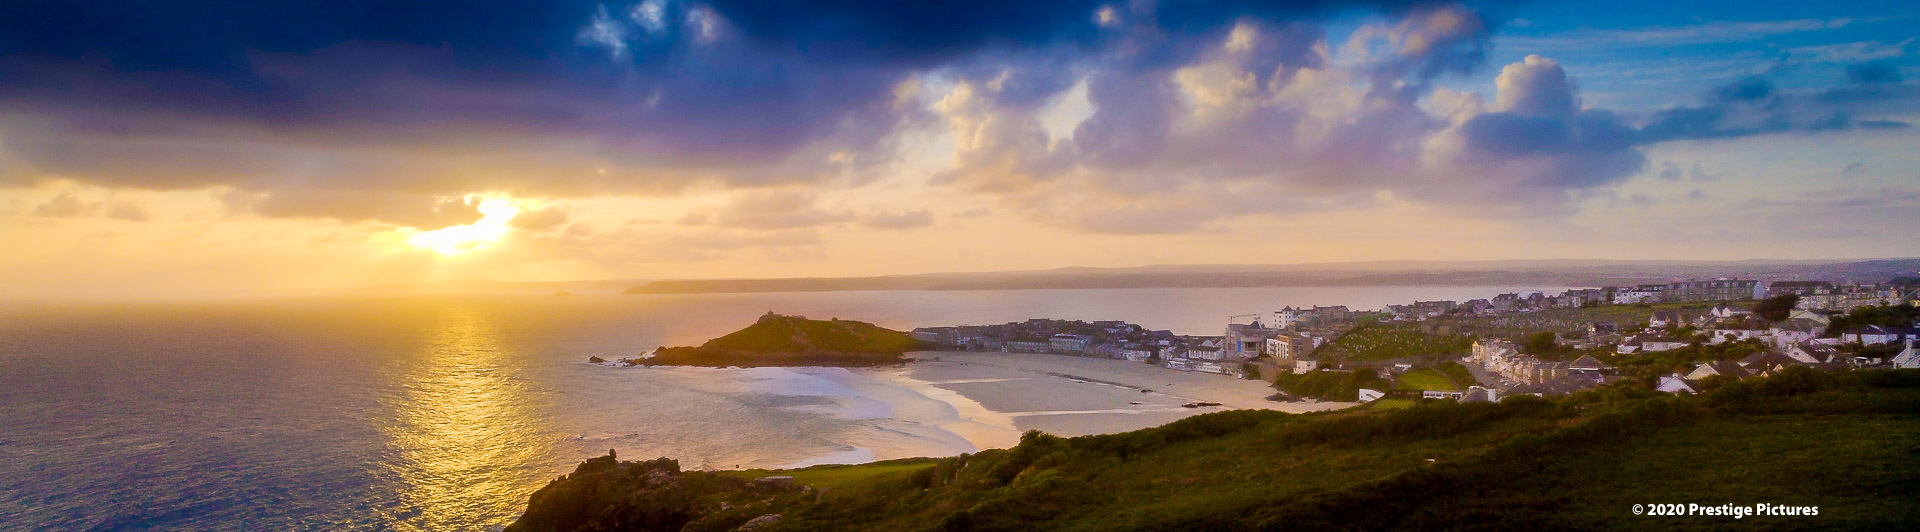 Sunrise over the sea by St Ives in Cornwall